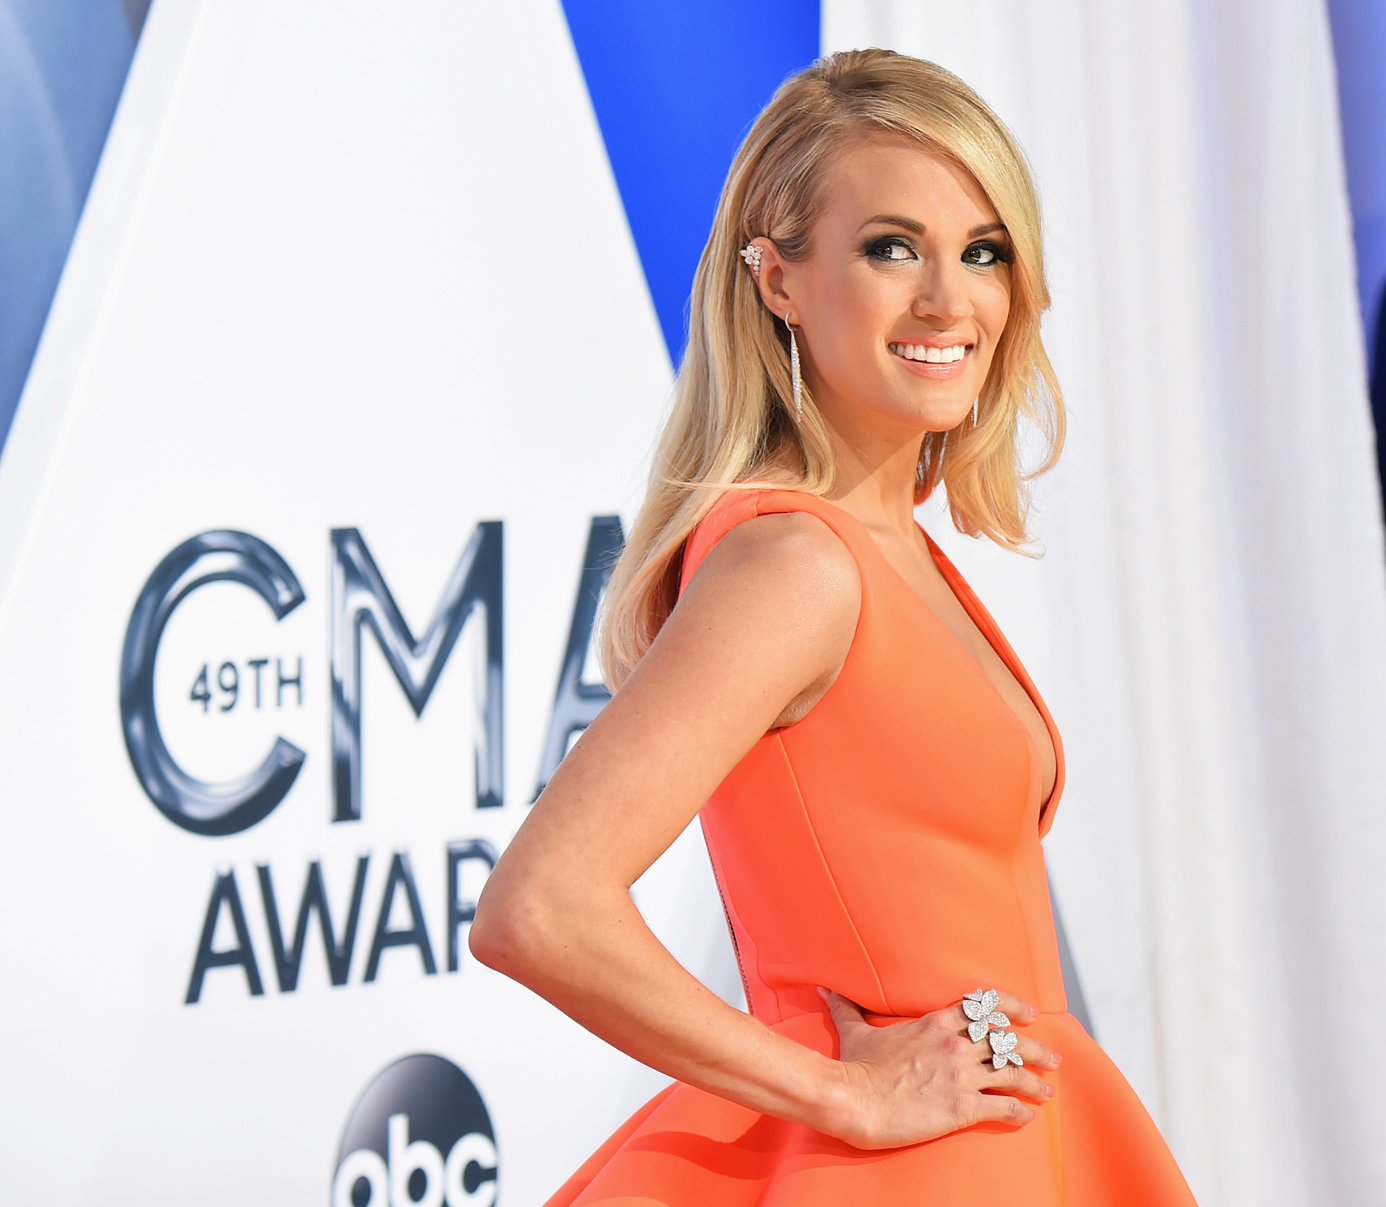 NASHVILLE, TN - NOVEMBER 04:  Singer Carrie Underwood attends the 49th annual CMA Awards at the Bridgestone Arena on November 4, 2015 in Nashville, Tennessee.  (Photo by Michael Loccisano/Getty Images)